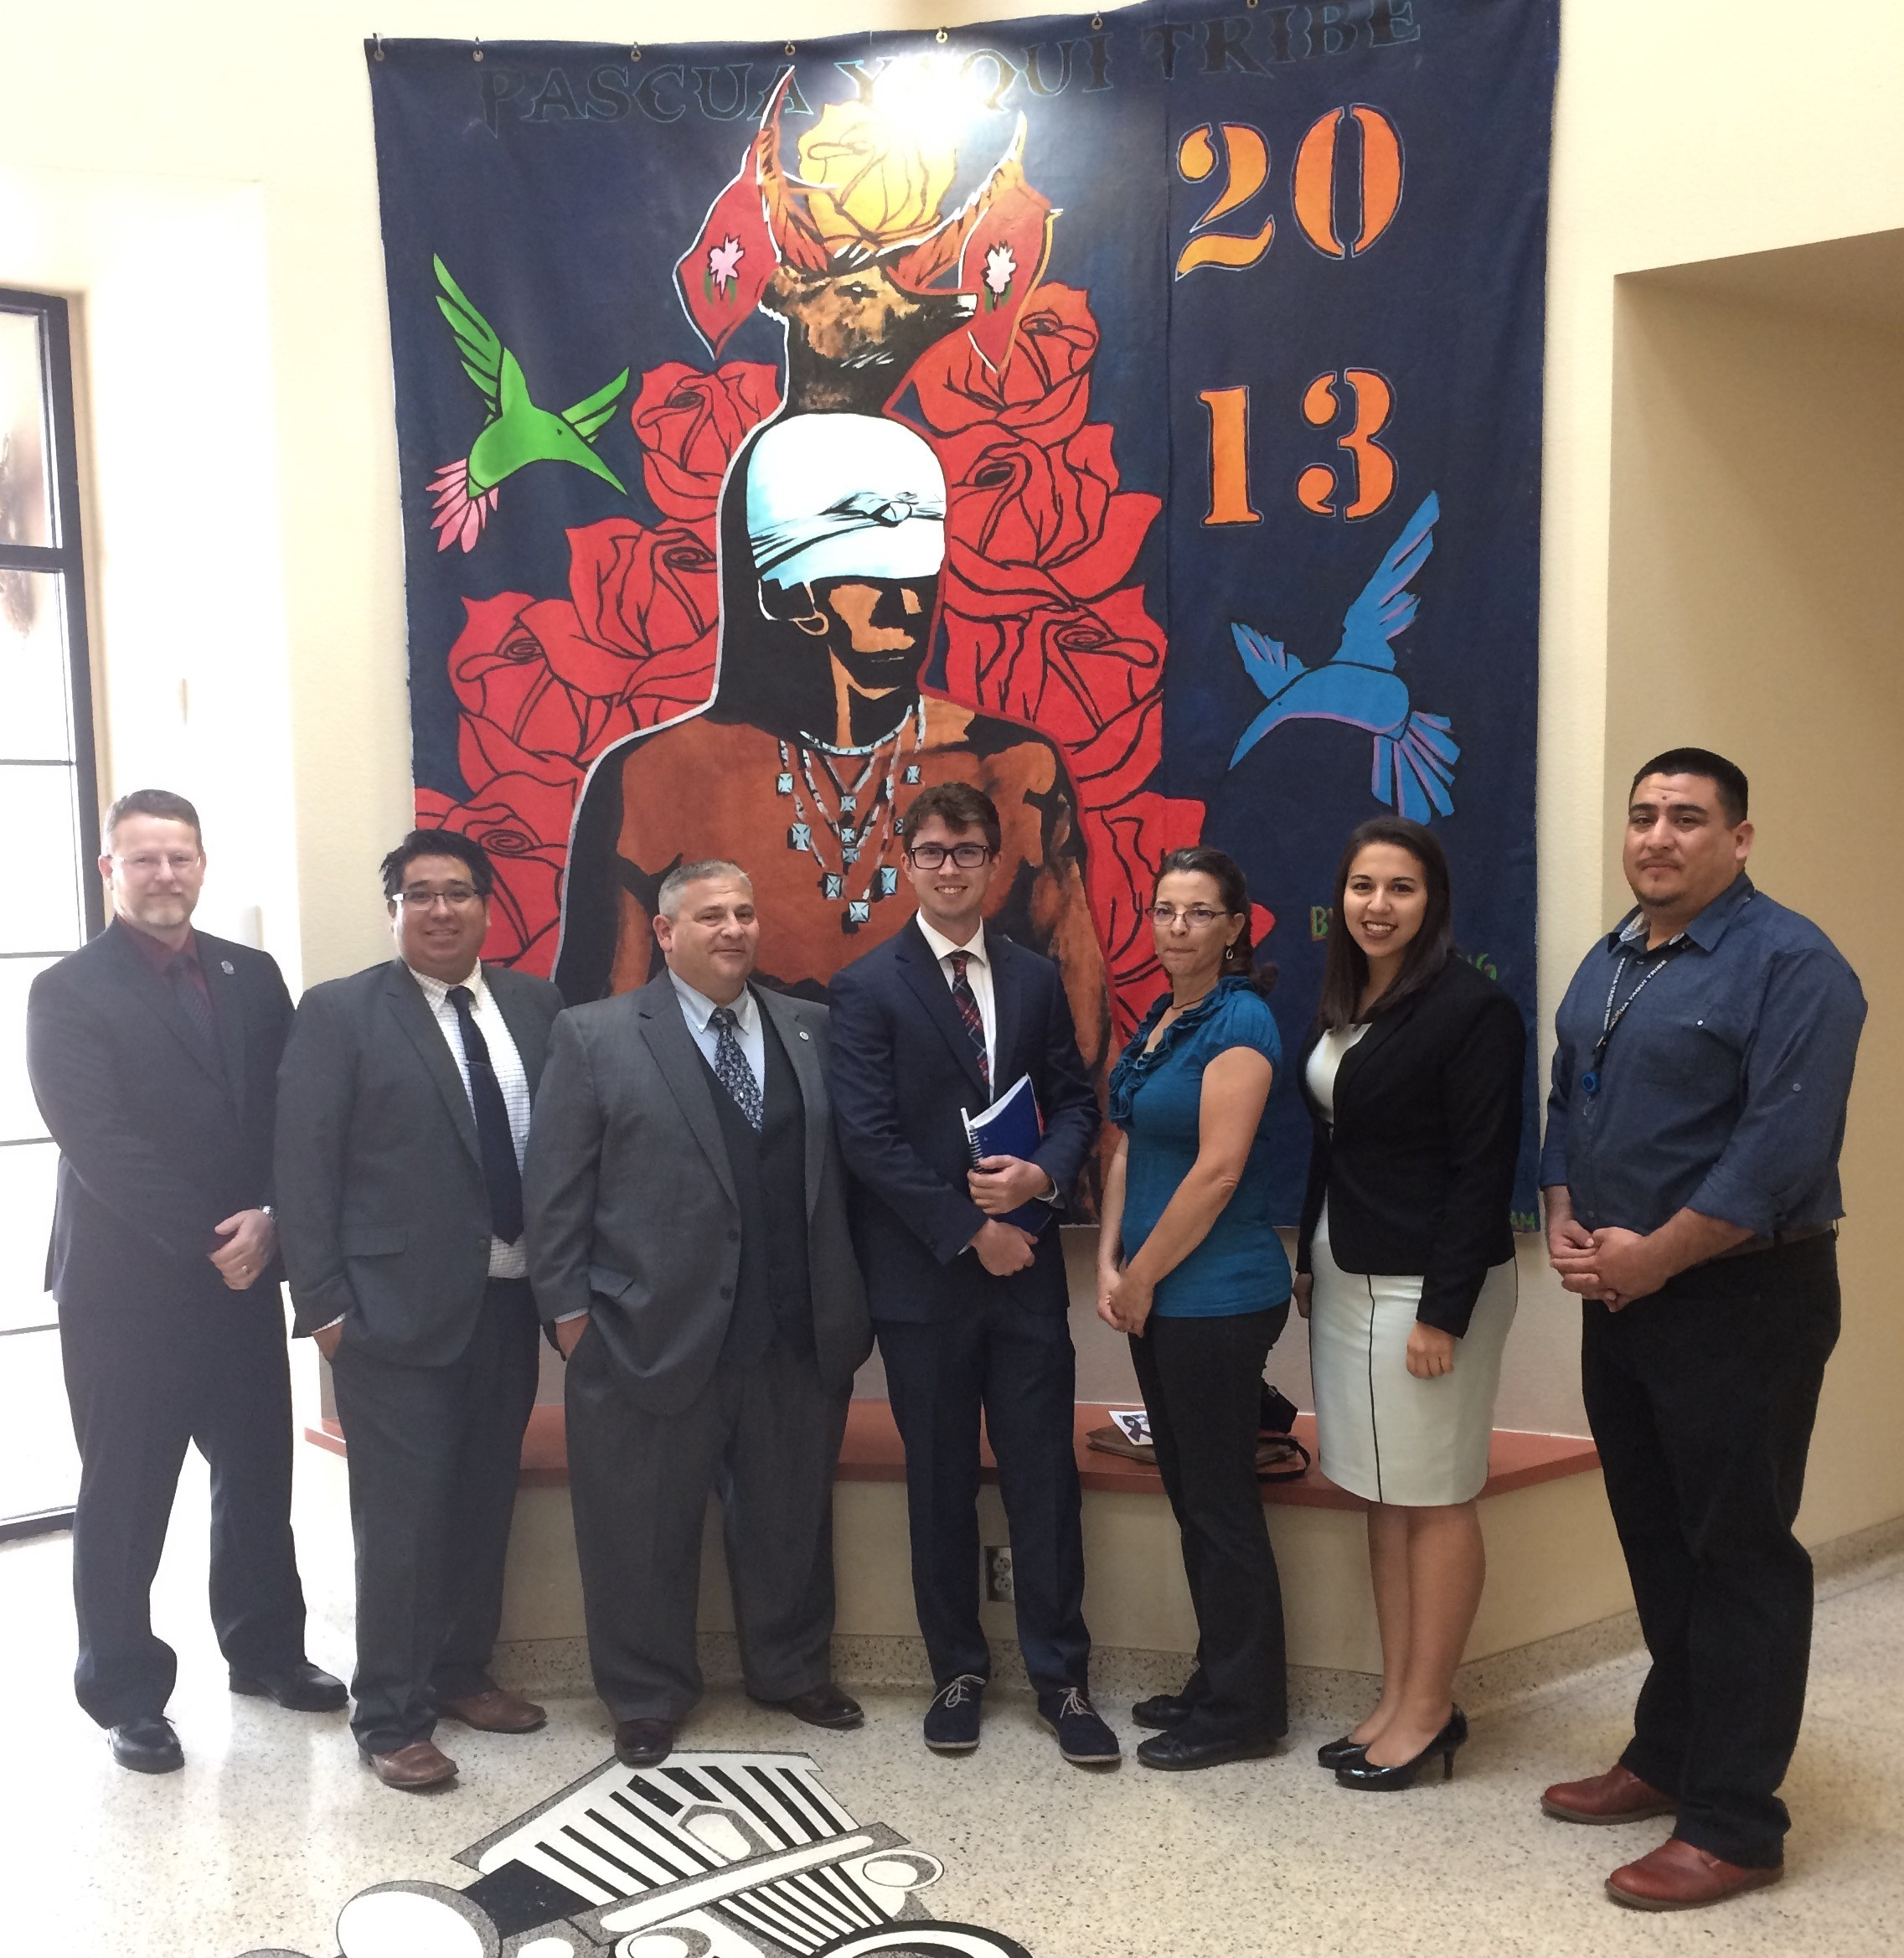 Tribal Justice Clinic at Pascua Yaqui Tribe